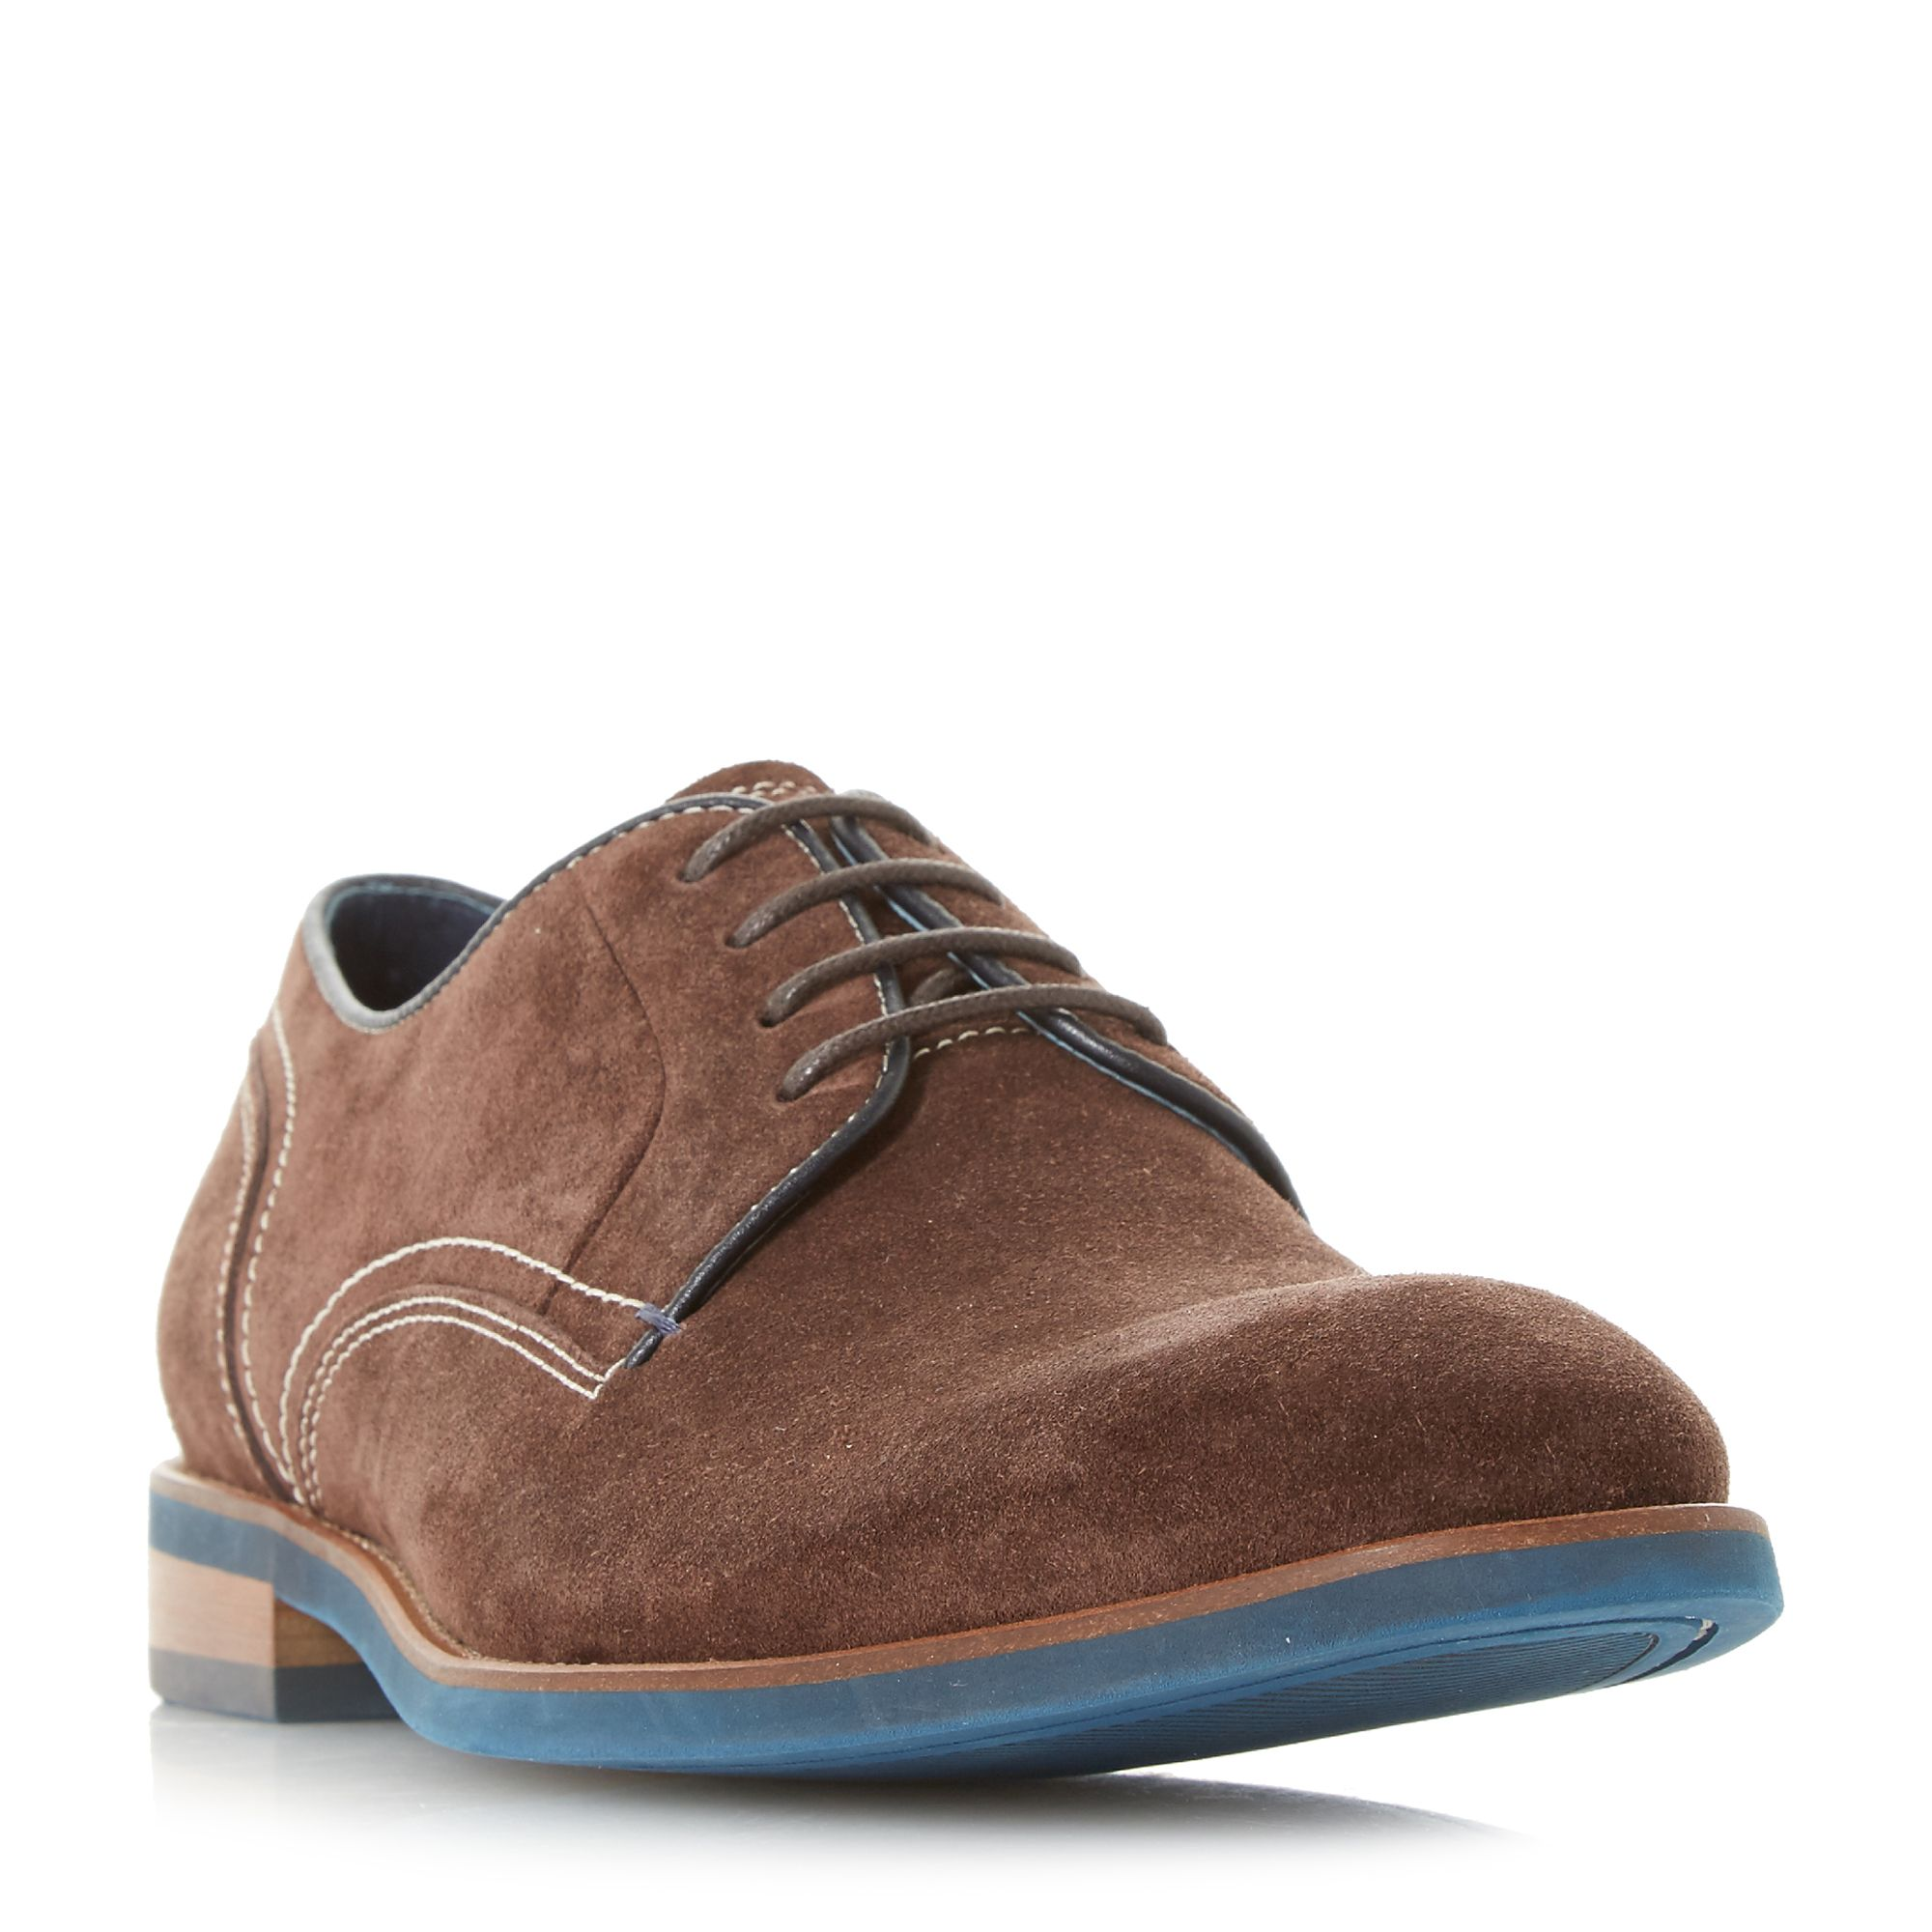 Baptista Contrast Gibson Lace Up Shoes by Dune